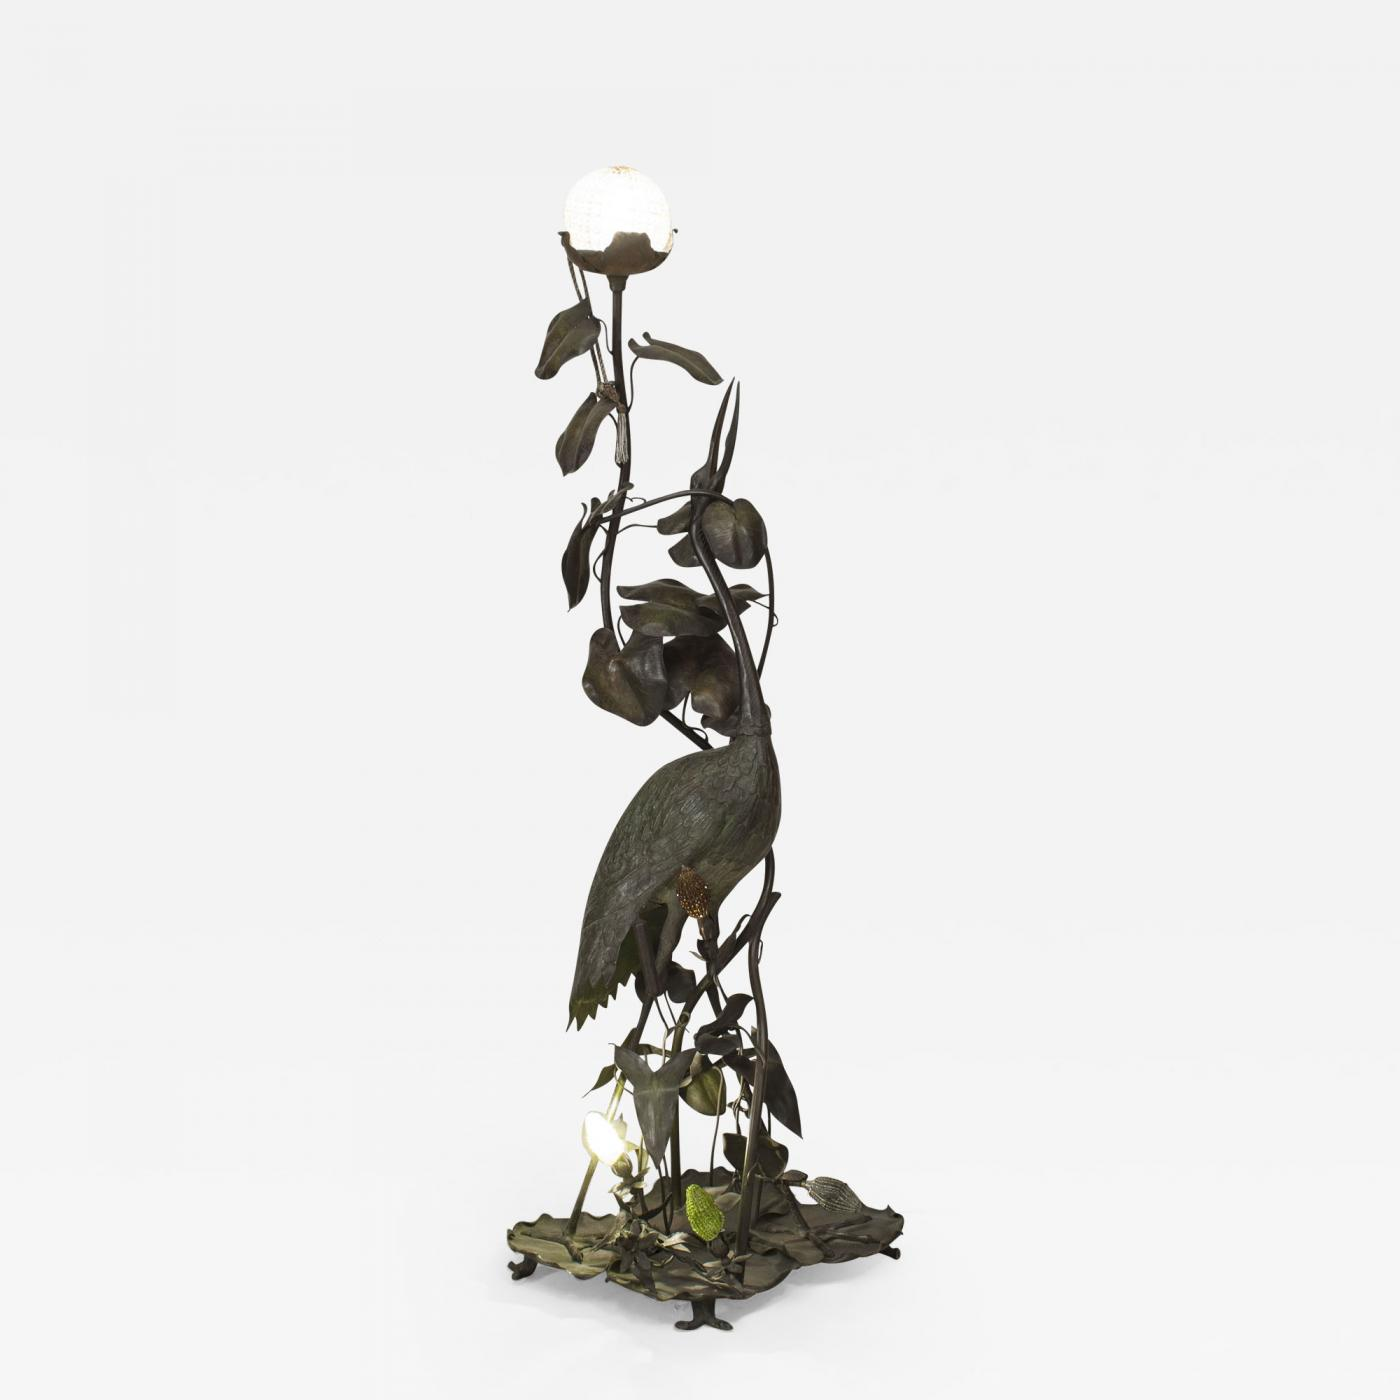 French art nouveau floor lamp of a large heron figure listings furniture lighting floor lamps aloadofball Choice Image